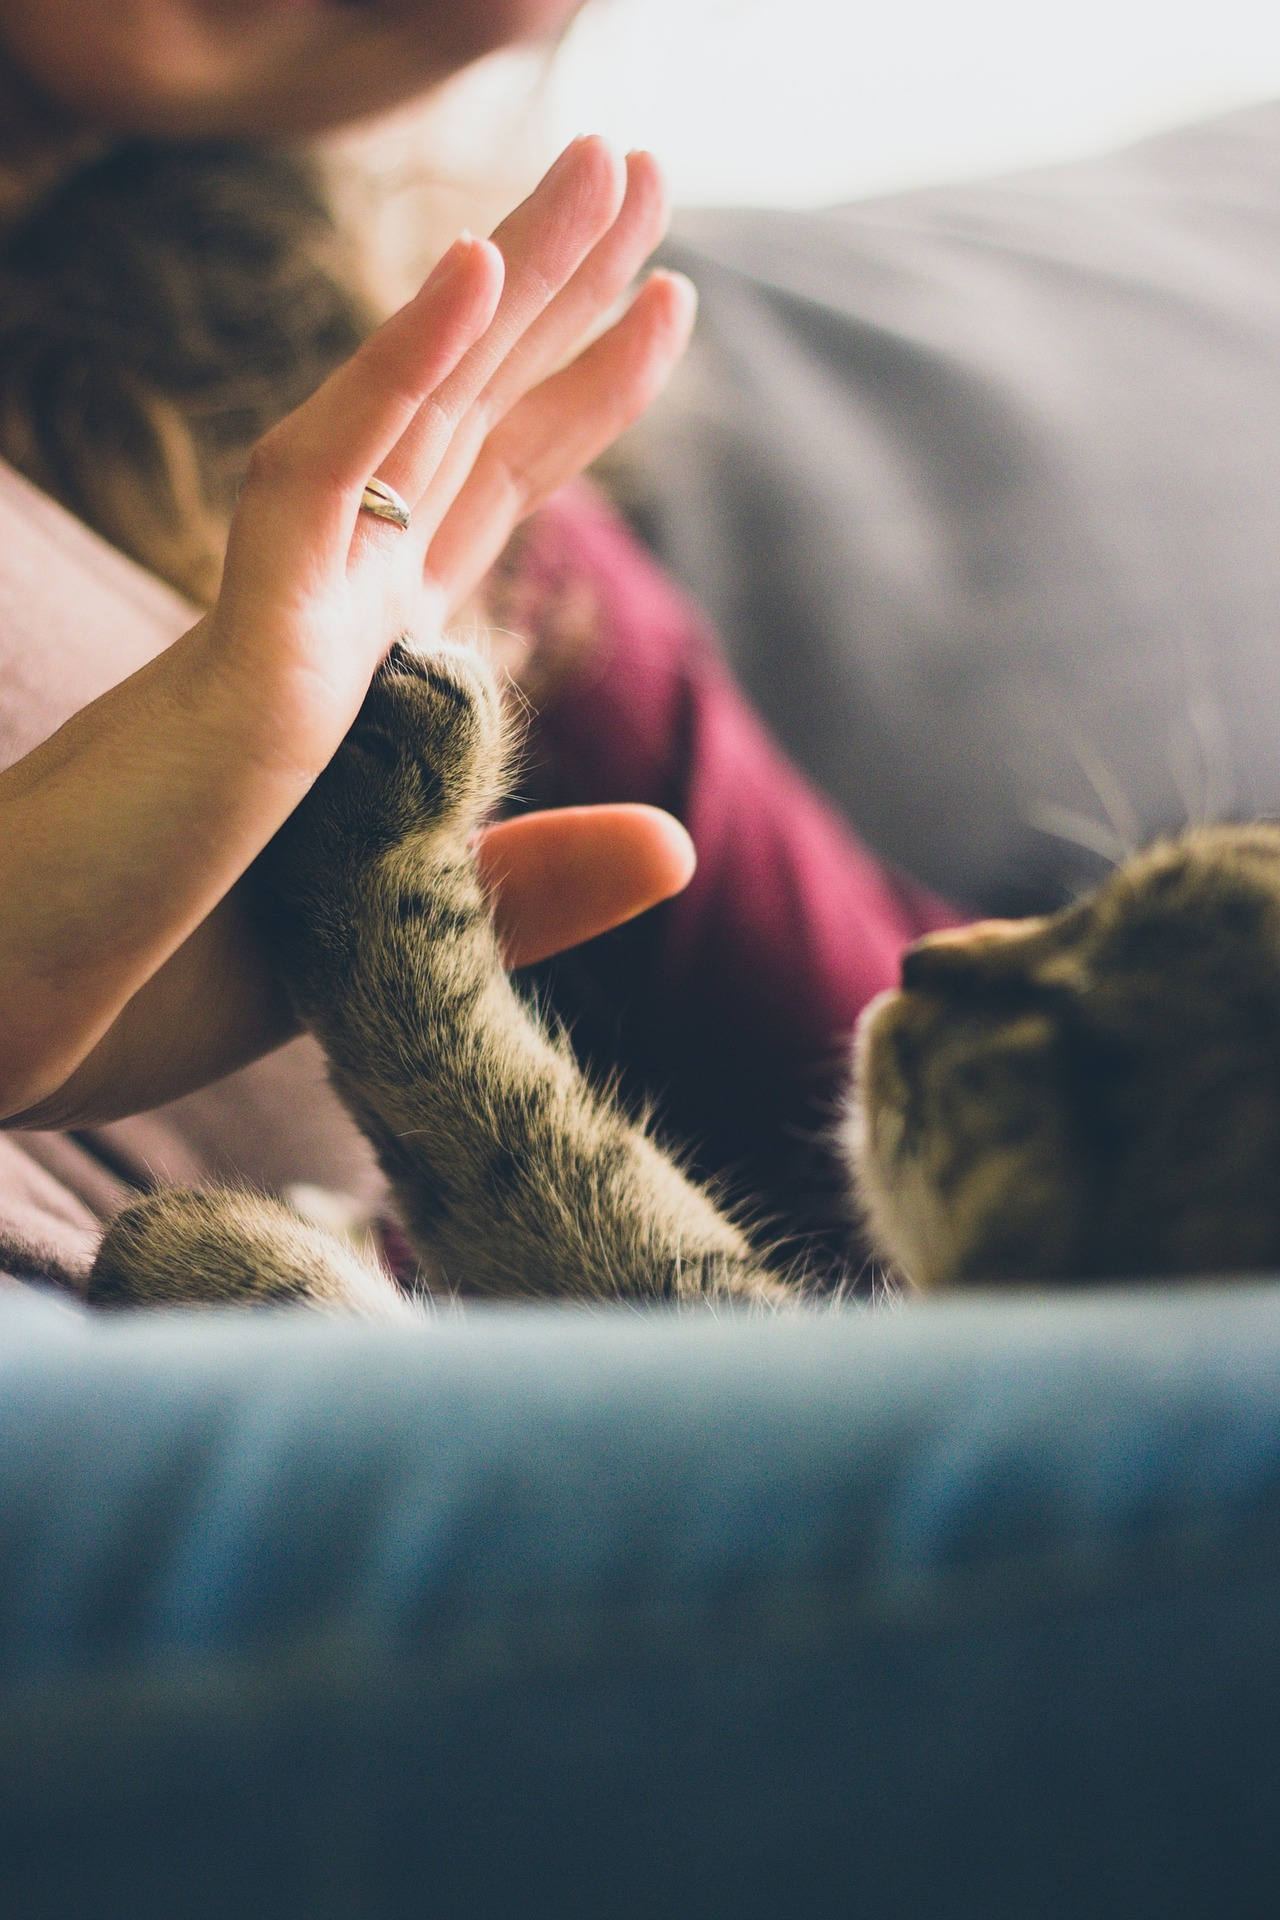 A Cat Giving a High FIve